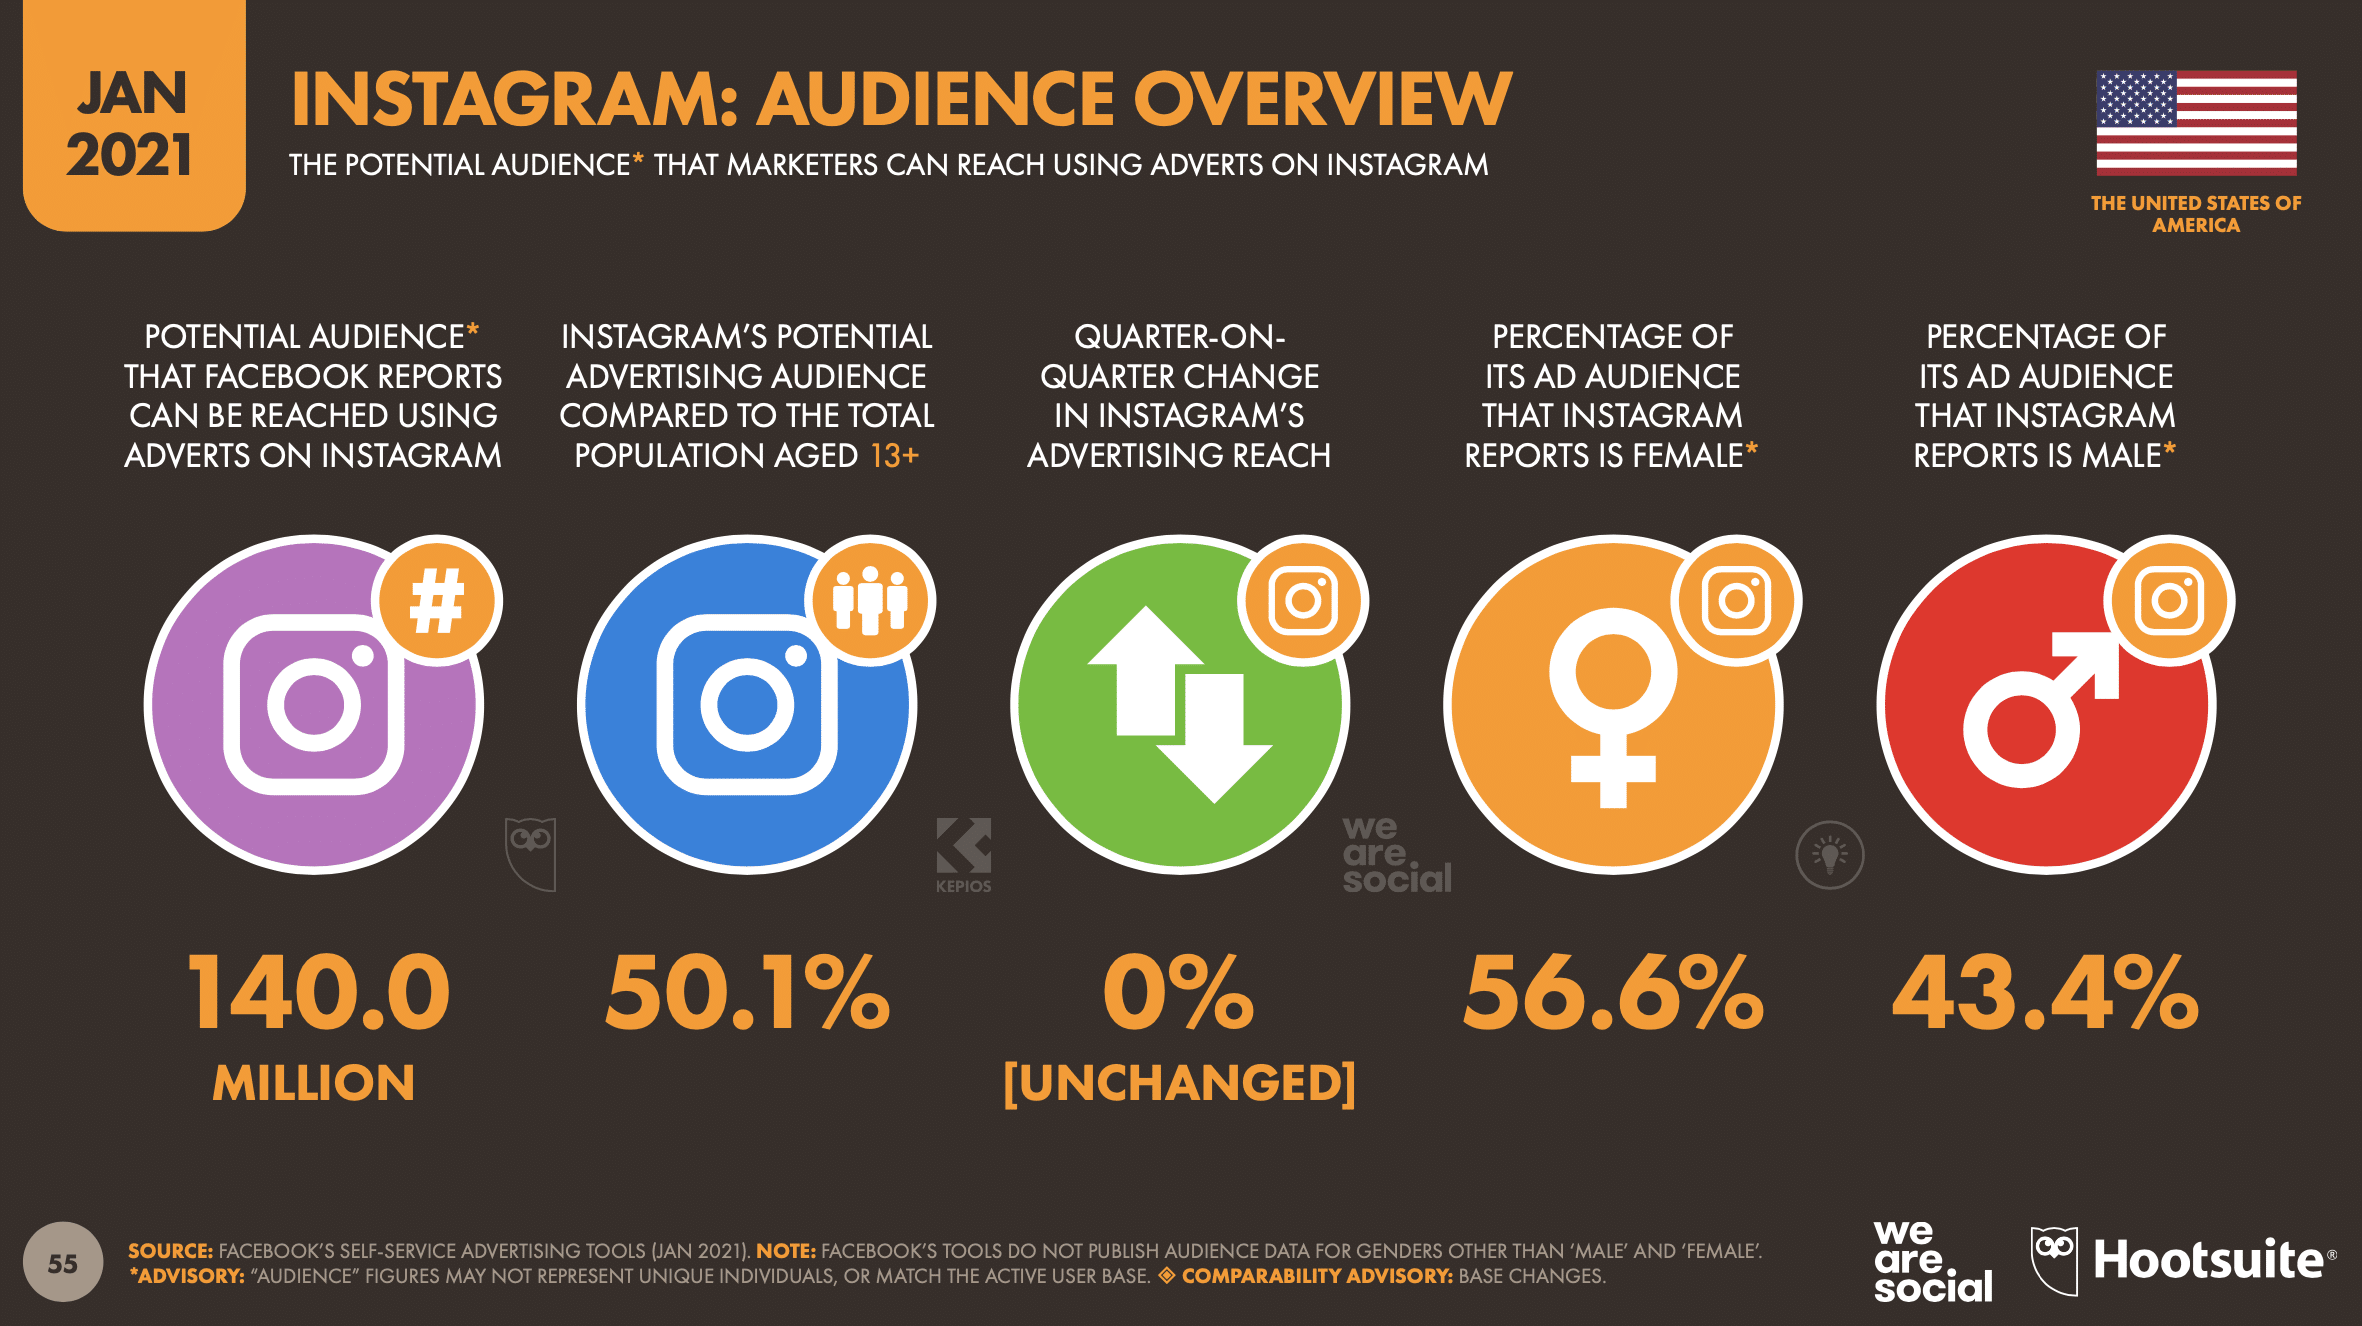 Instagram Audience Overview